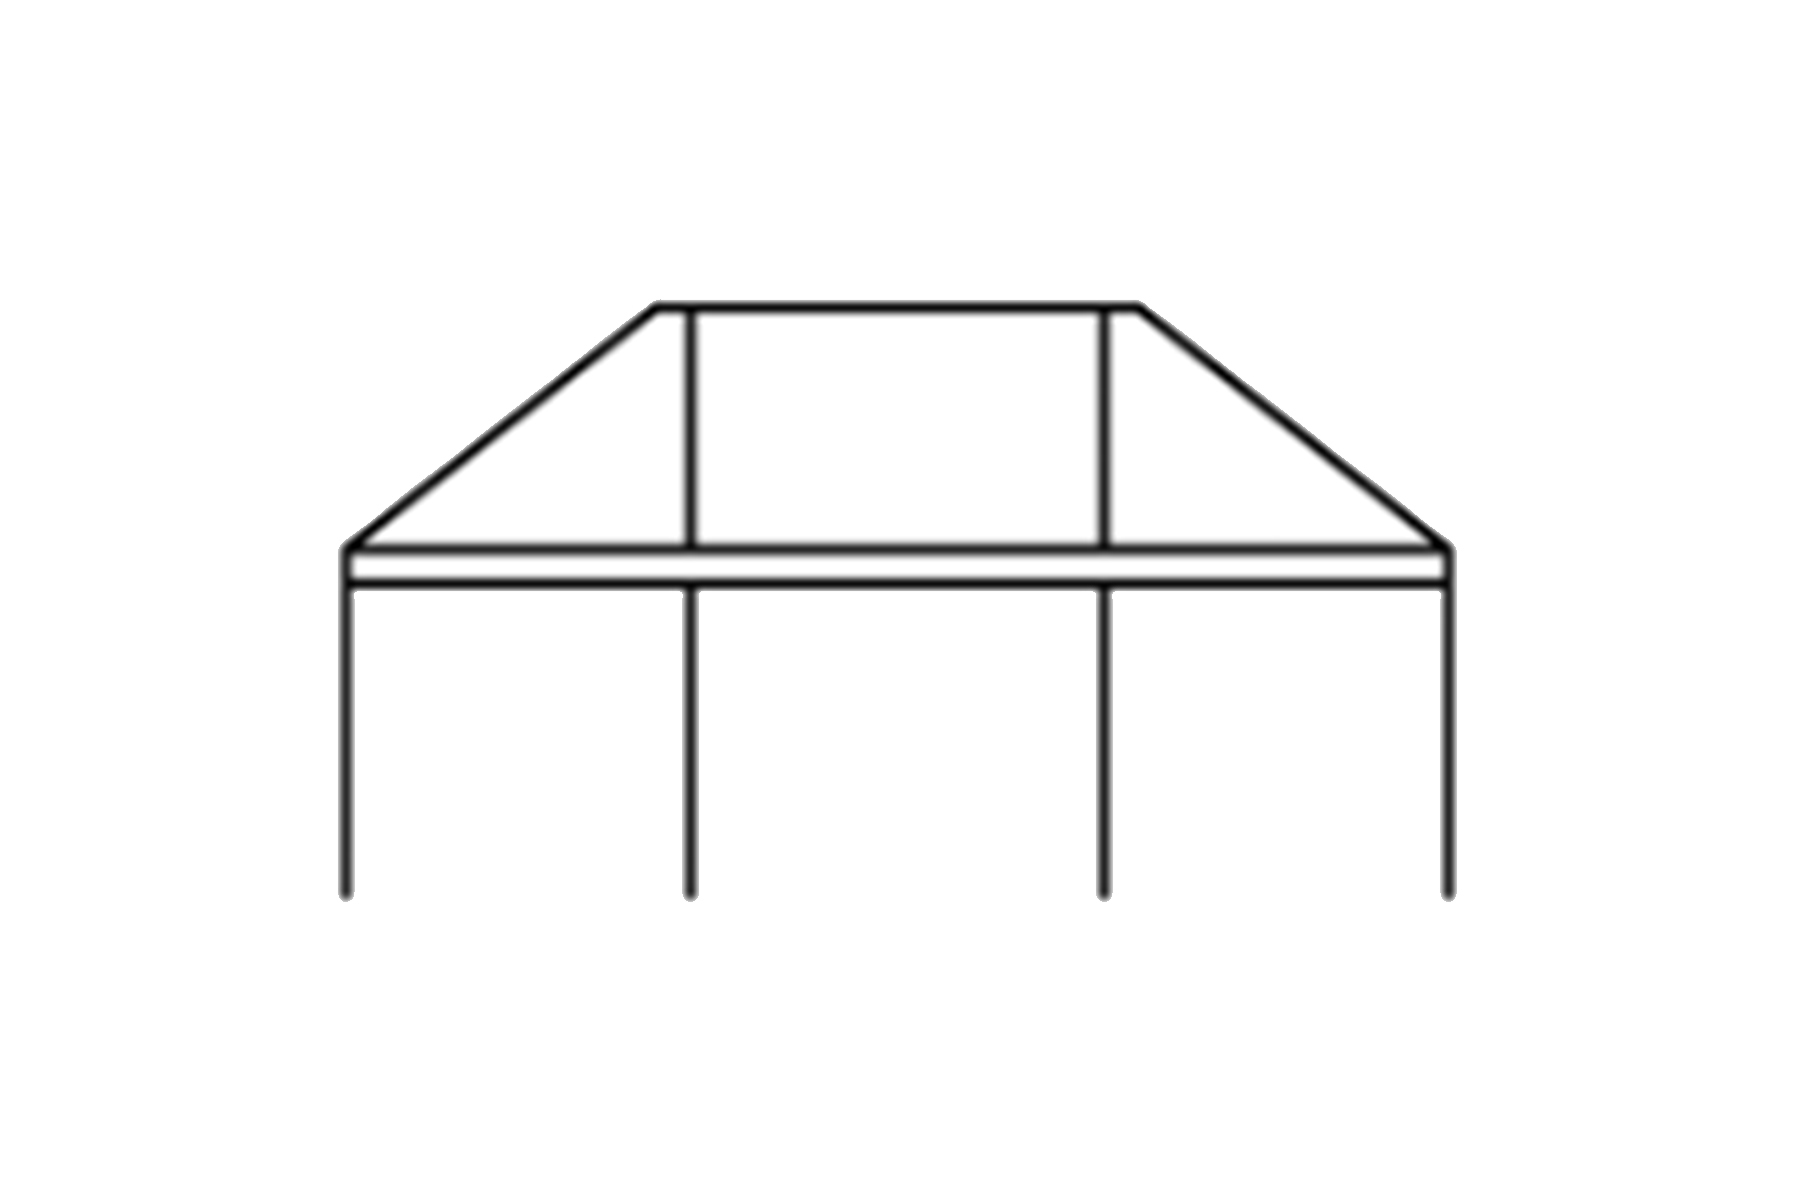 30 x 75 Frame Tent